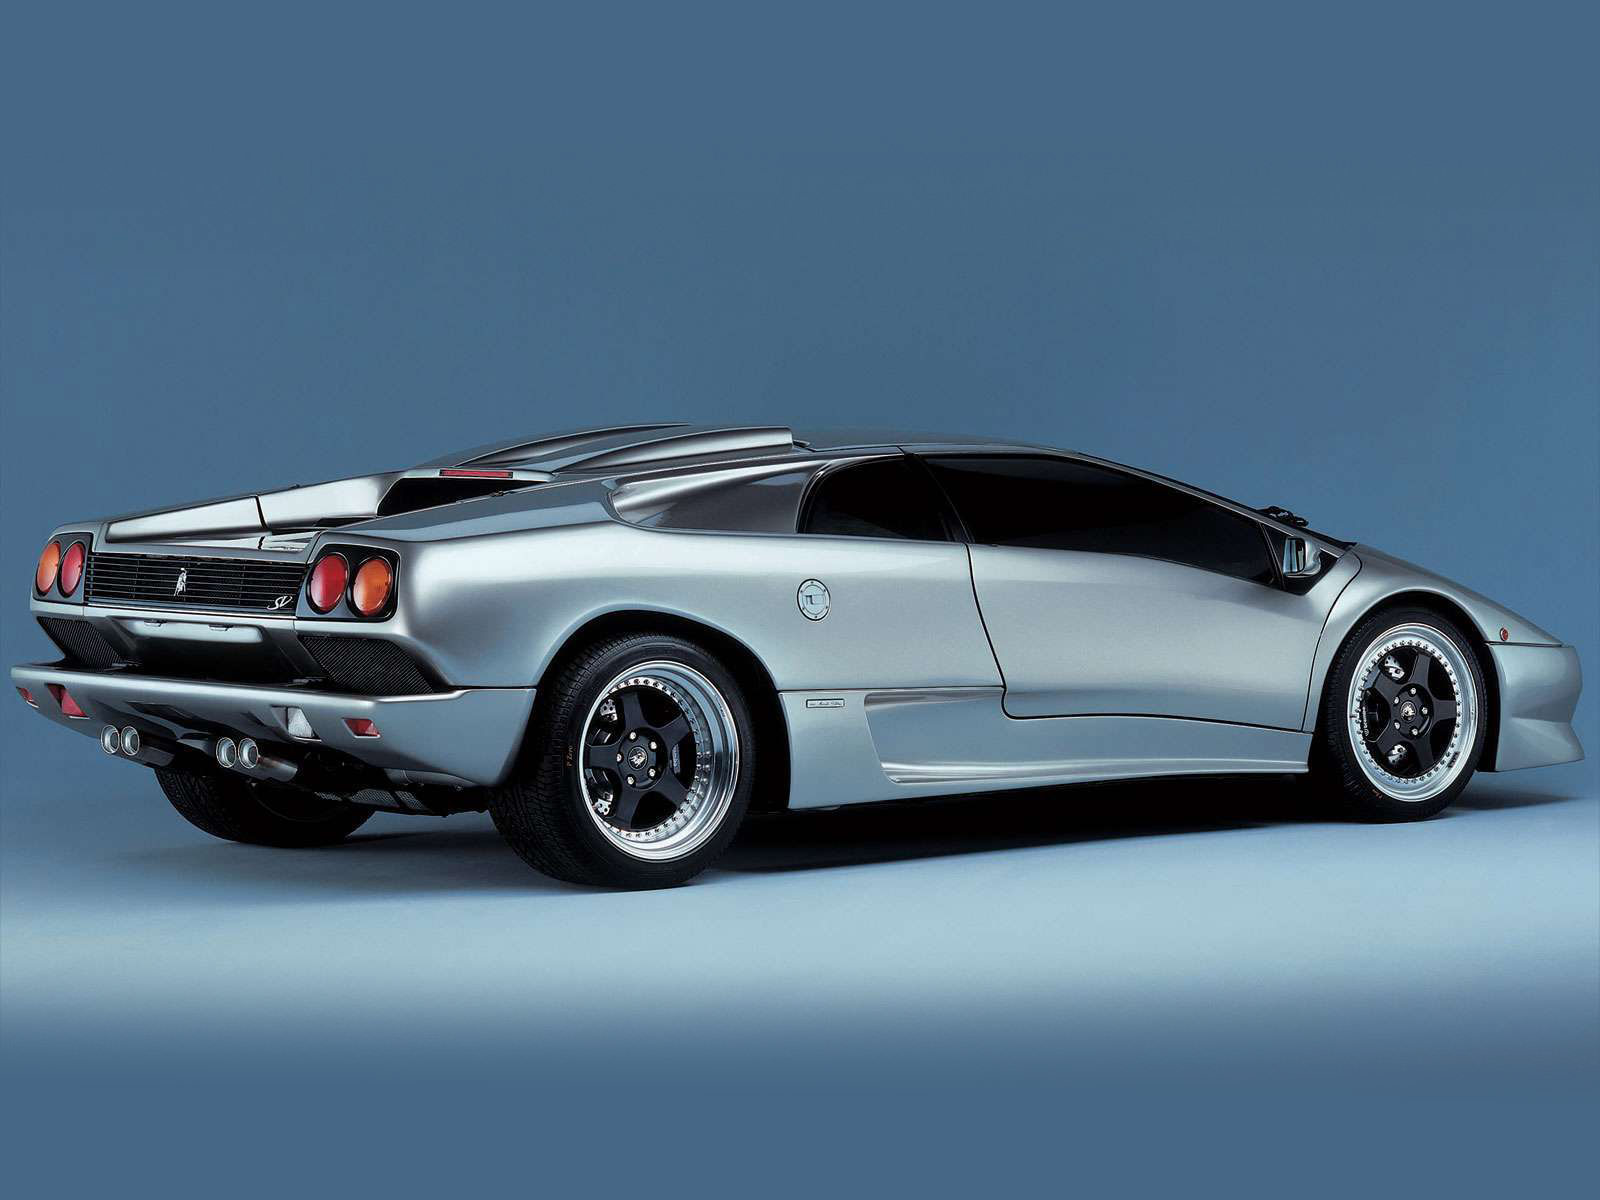 Car Accident Lawyers Info 1996 Lamborghini Diablo Sv Pictures